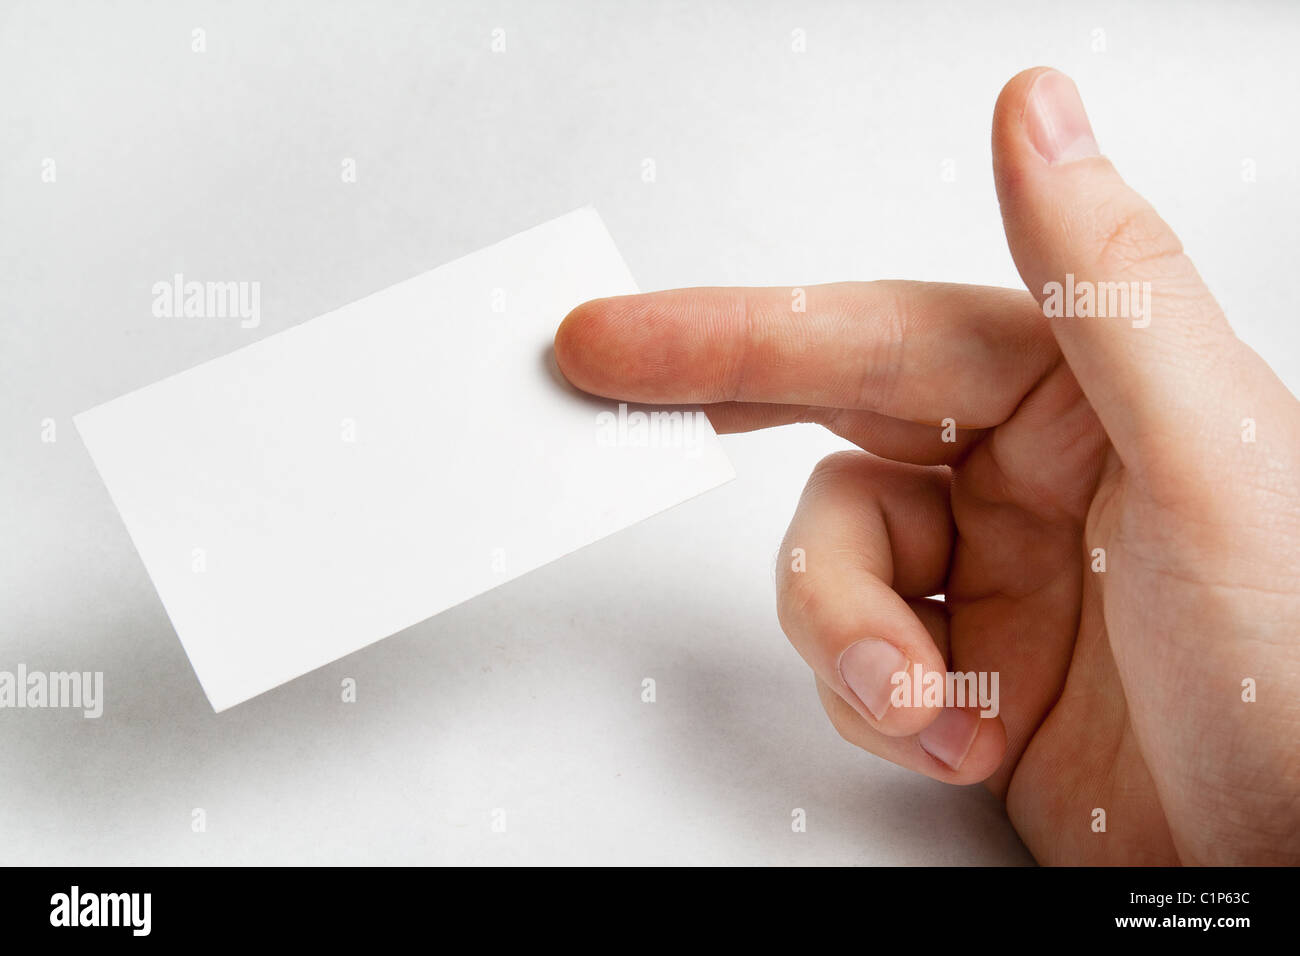 Hand holding blank business card over white - Stock Image